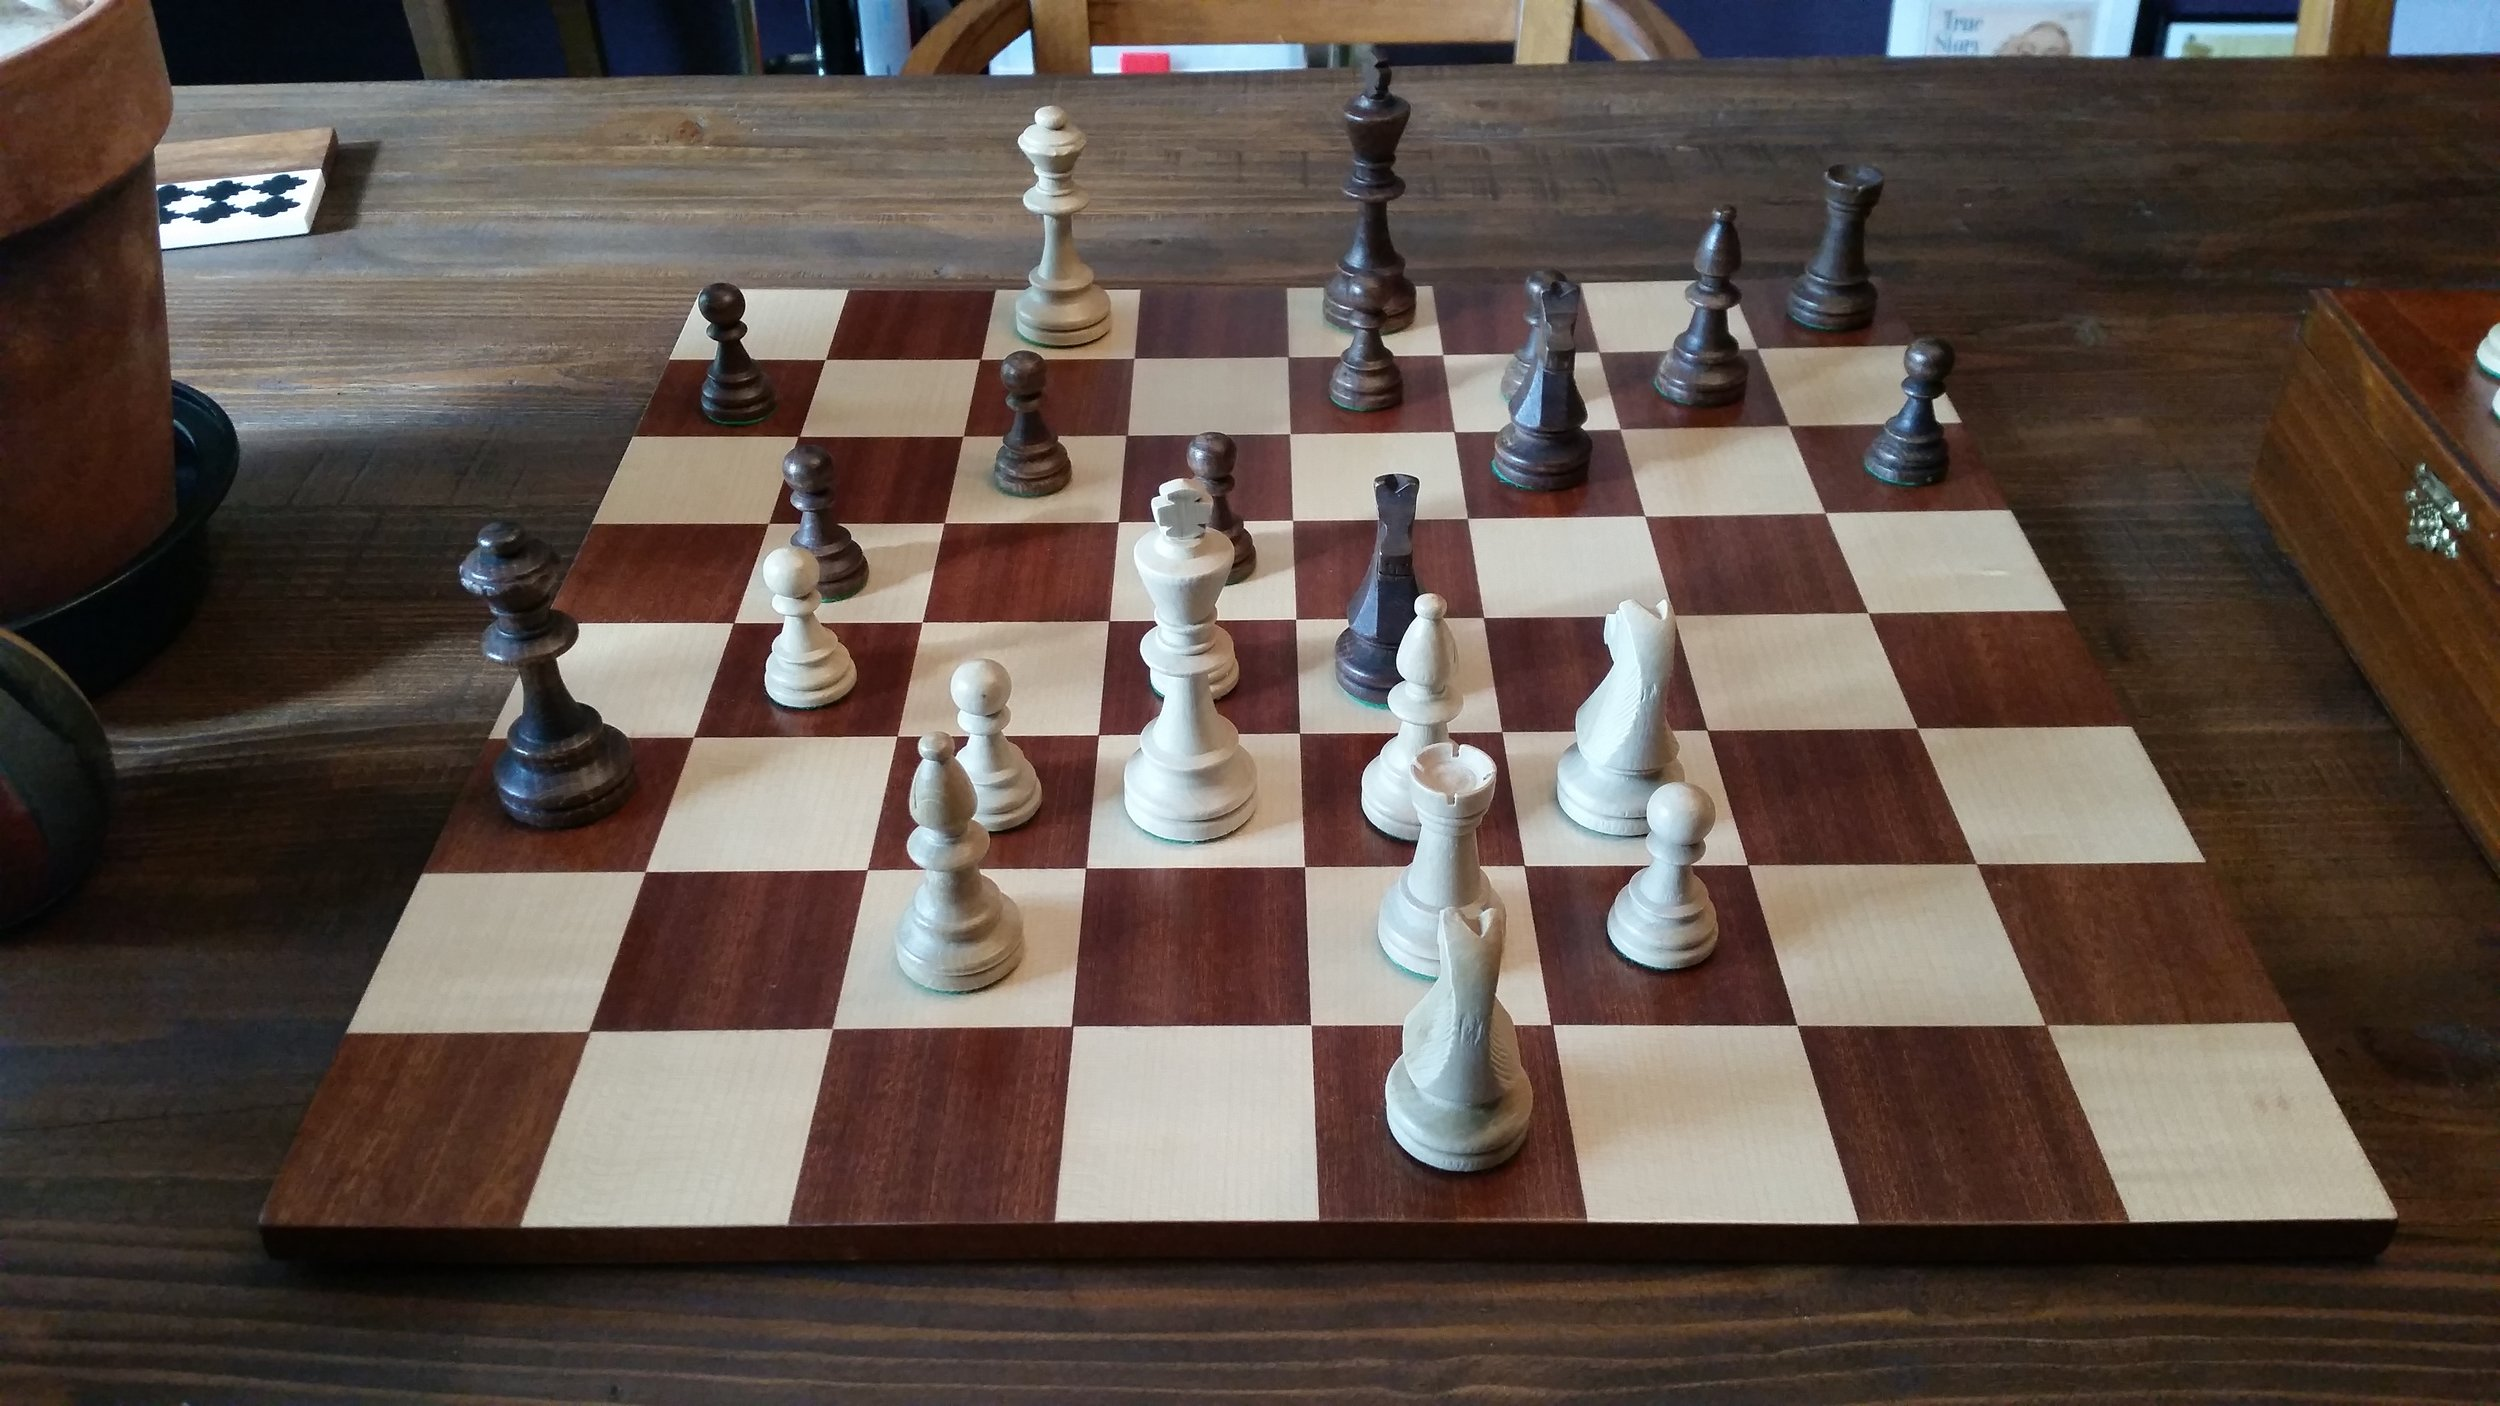 Checkmate! My husband is teaching me how to play chess. I won the very first game, and exactly zero games since.